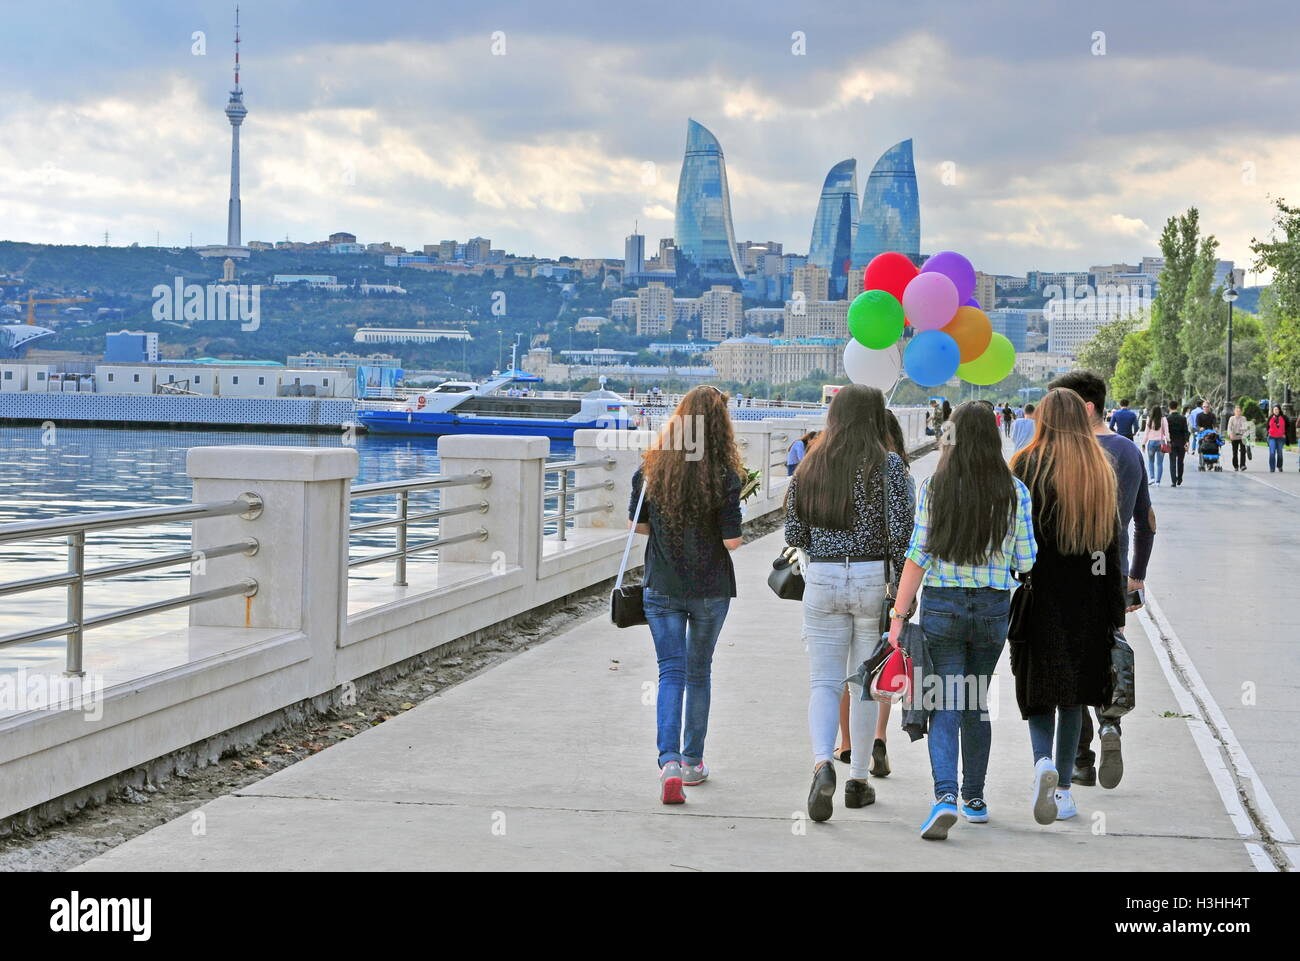 BAKU, AZERBAIJAN - SEPTEMBER 25: People goes by the seafront of Baku on September 25, 2016. Baku is a capital and - Stock Image